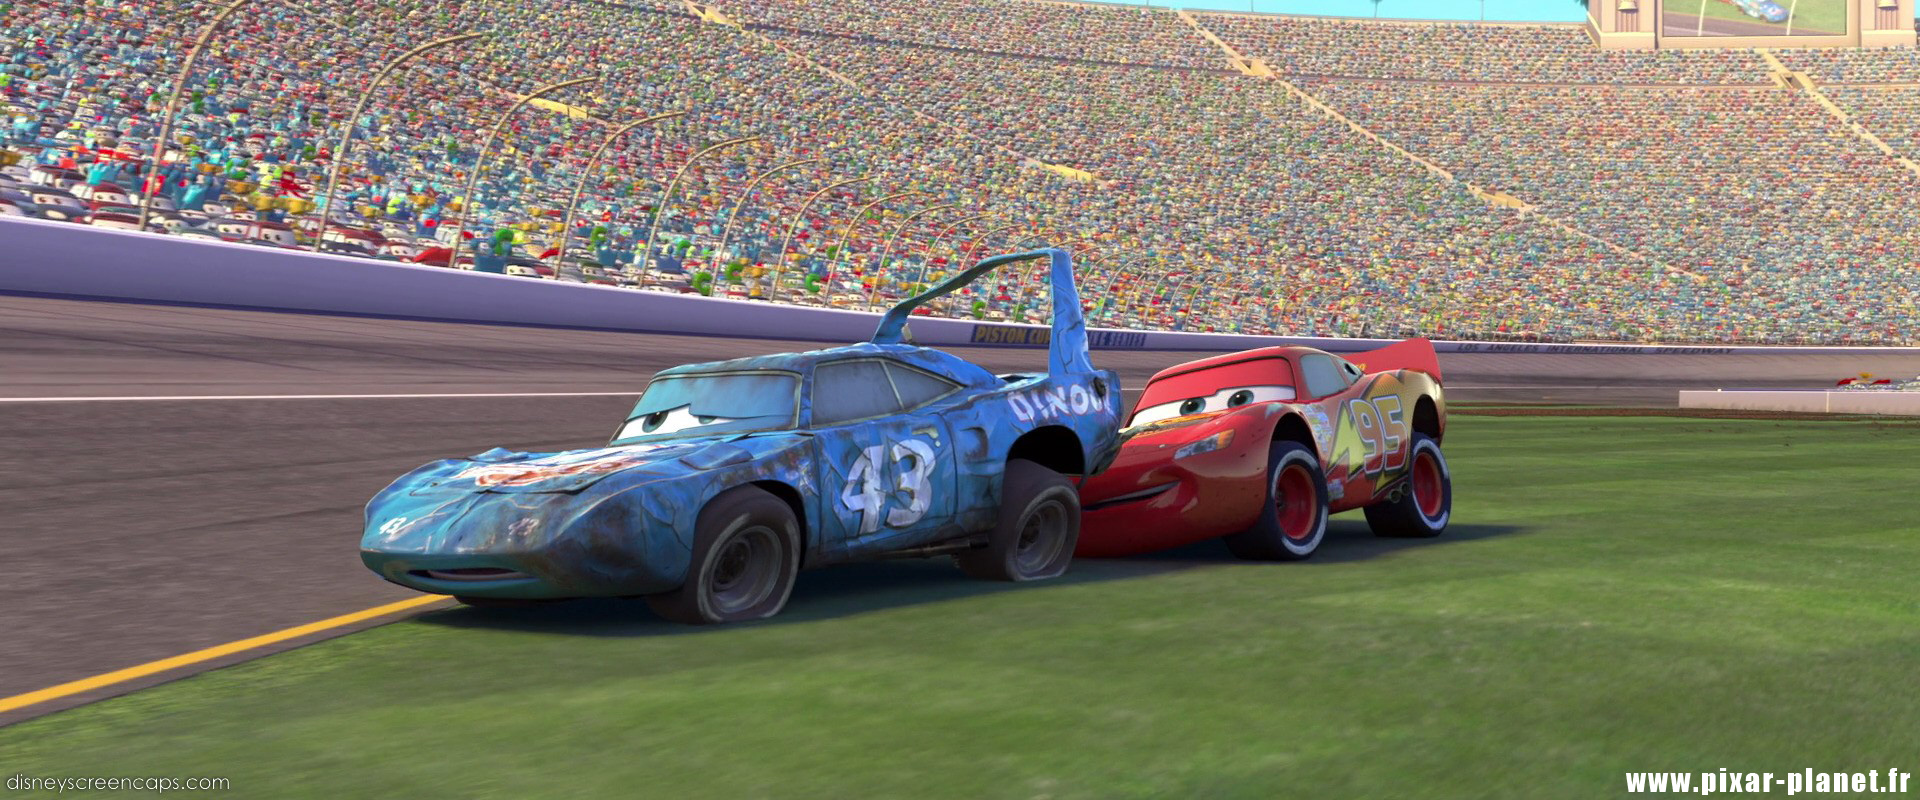 Pixar Planet coches de Disney